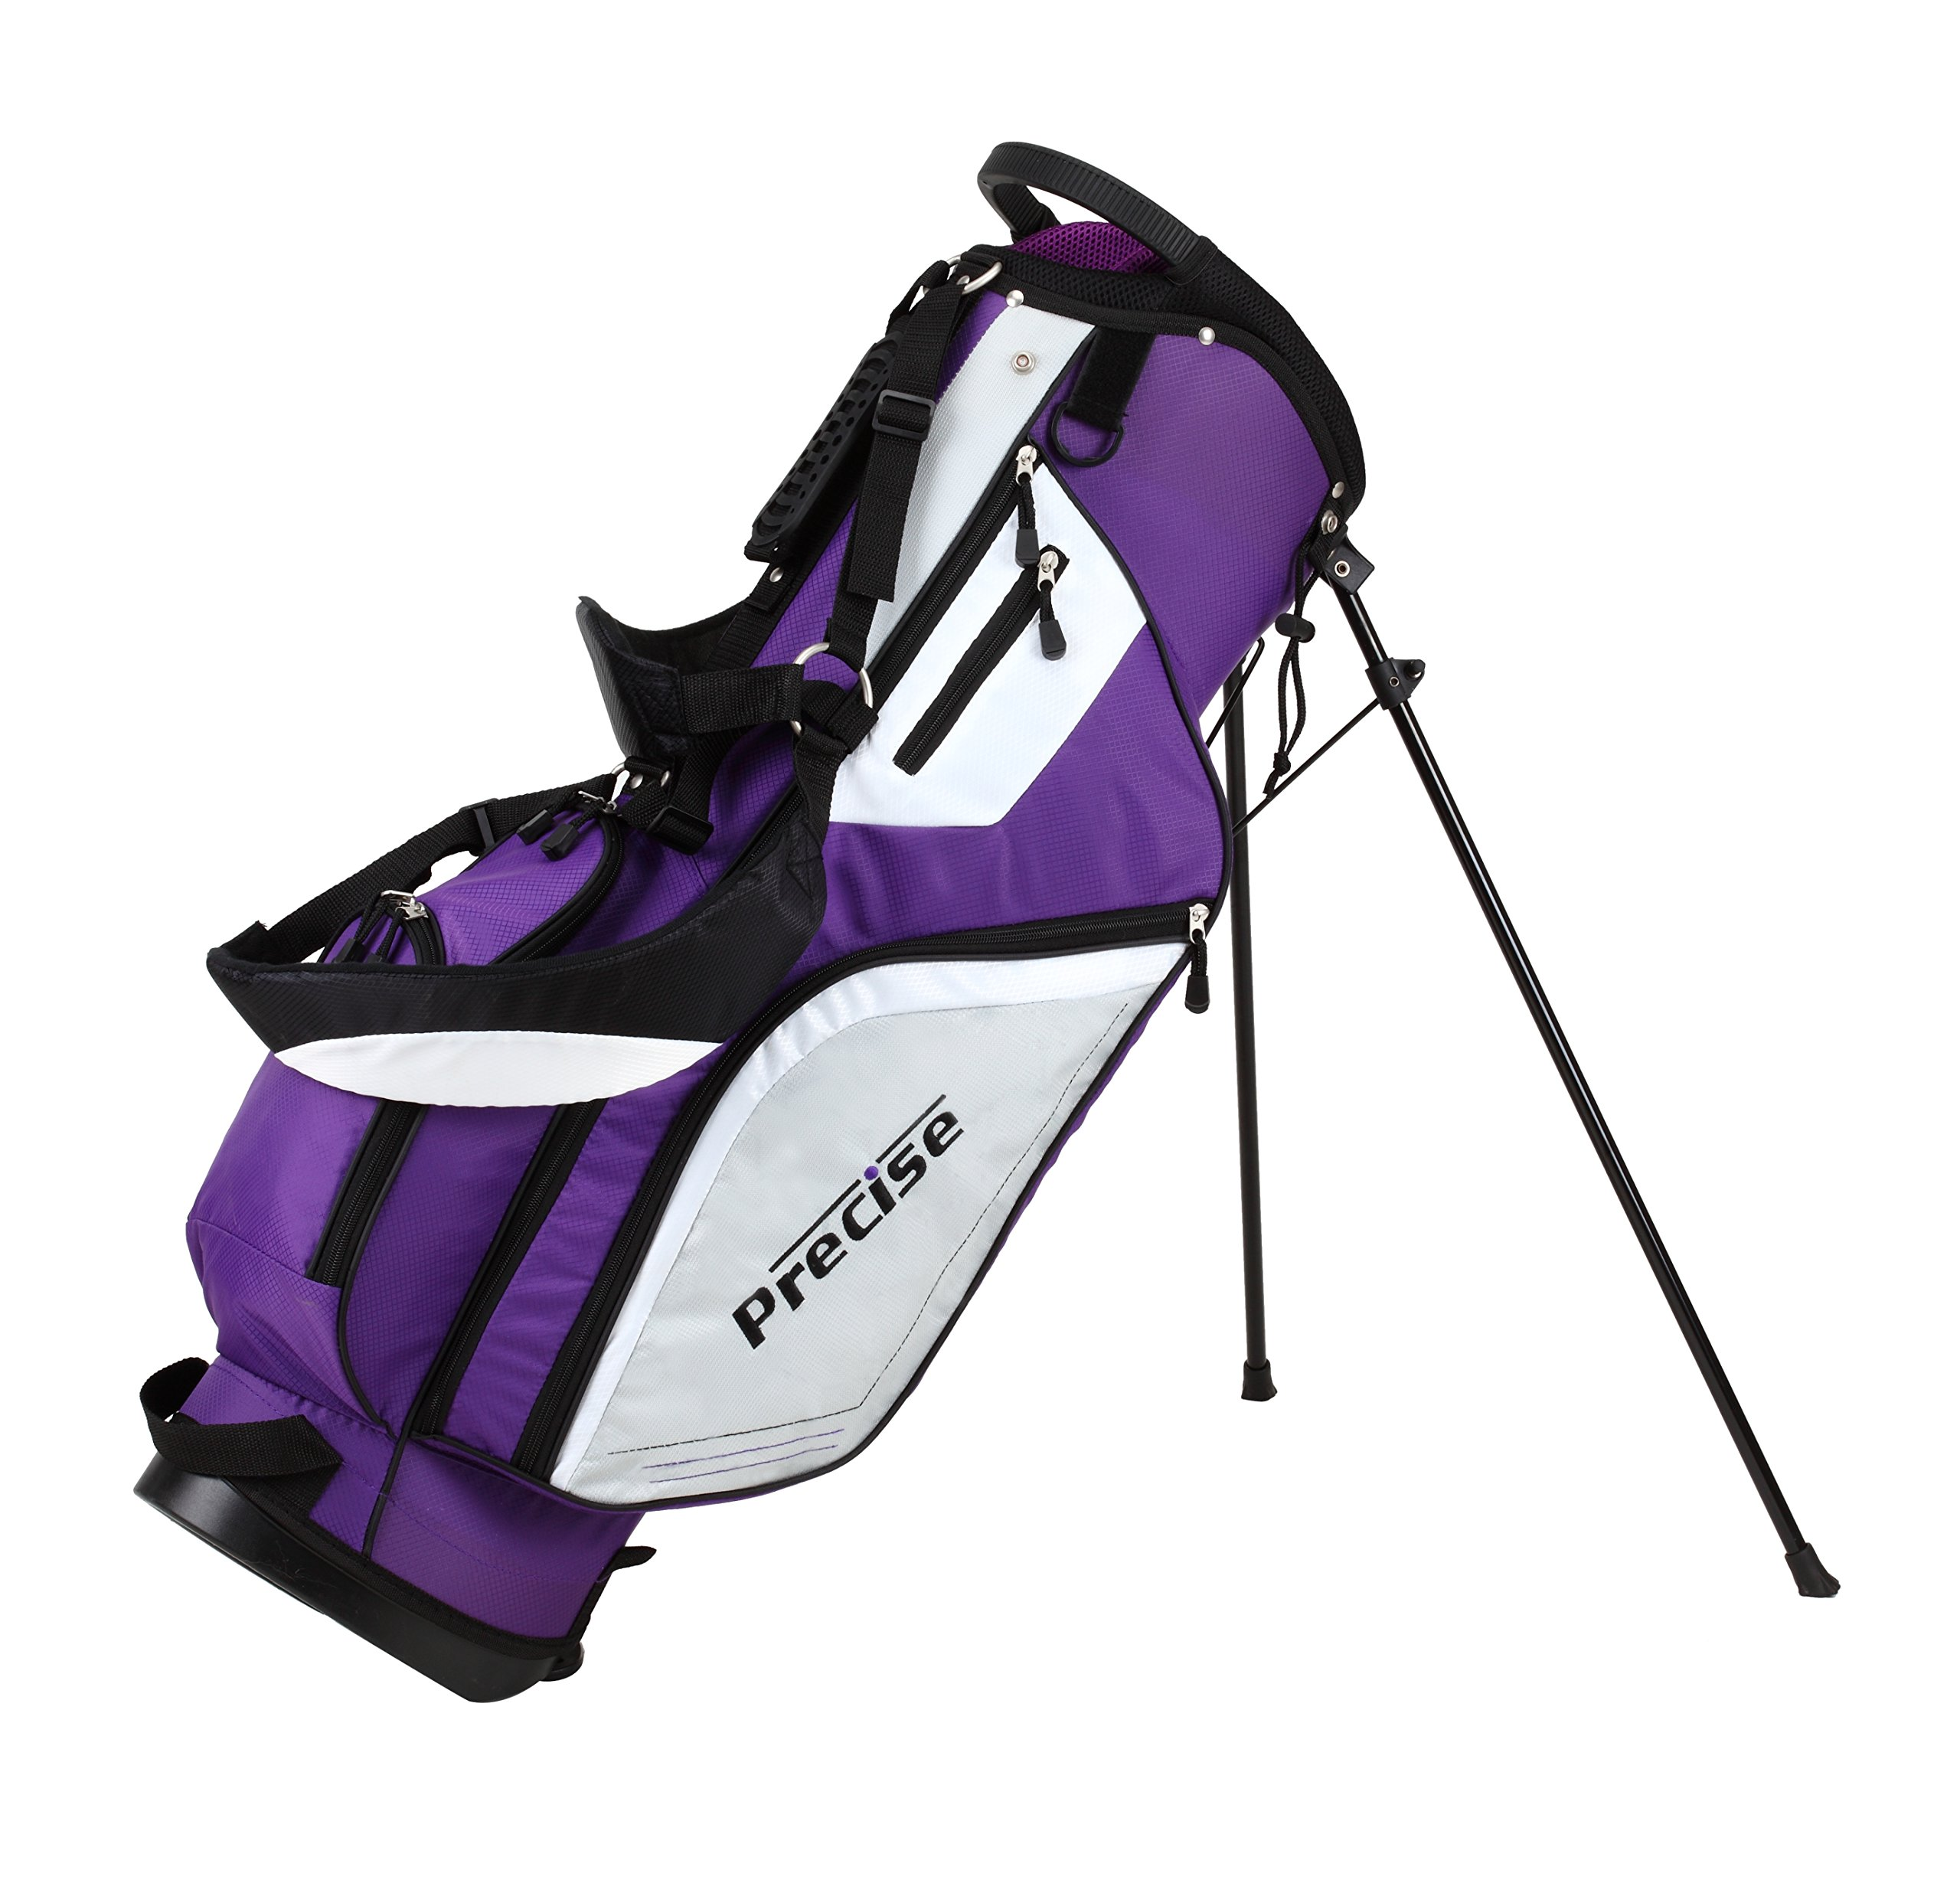 Precise M5 Ladies Womens Complete Right Handed Golf Clubs Set Includes Titanium Driver, S.S. Fairway, S.S. Hybrid, S.S. 5-PW Irons, Putter, Stand Bag, 3 H/C's Purple (Right Hand) by PreciseGolf Co. (Image #8)